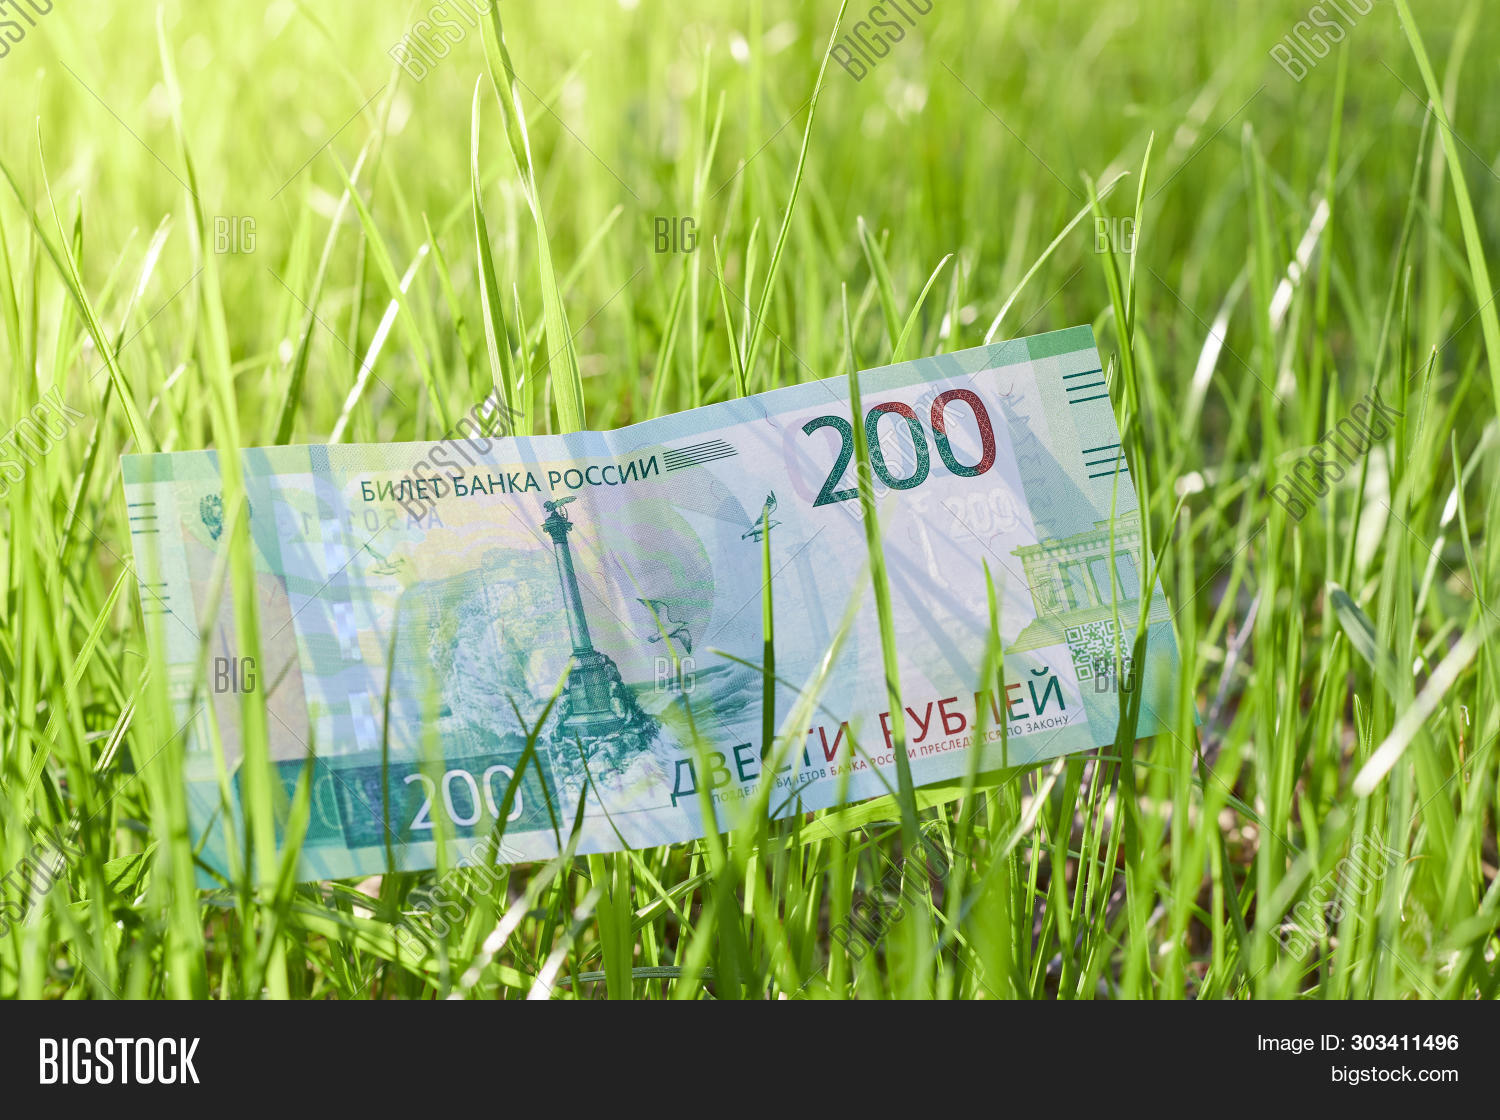 Banknote Two Hundred Russian Rubles. Paper Russian Money On The Background Of Green Grass On A Sunny